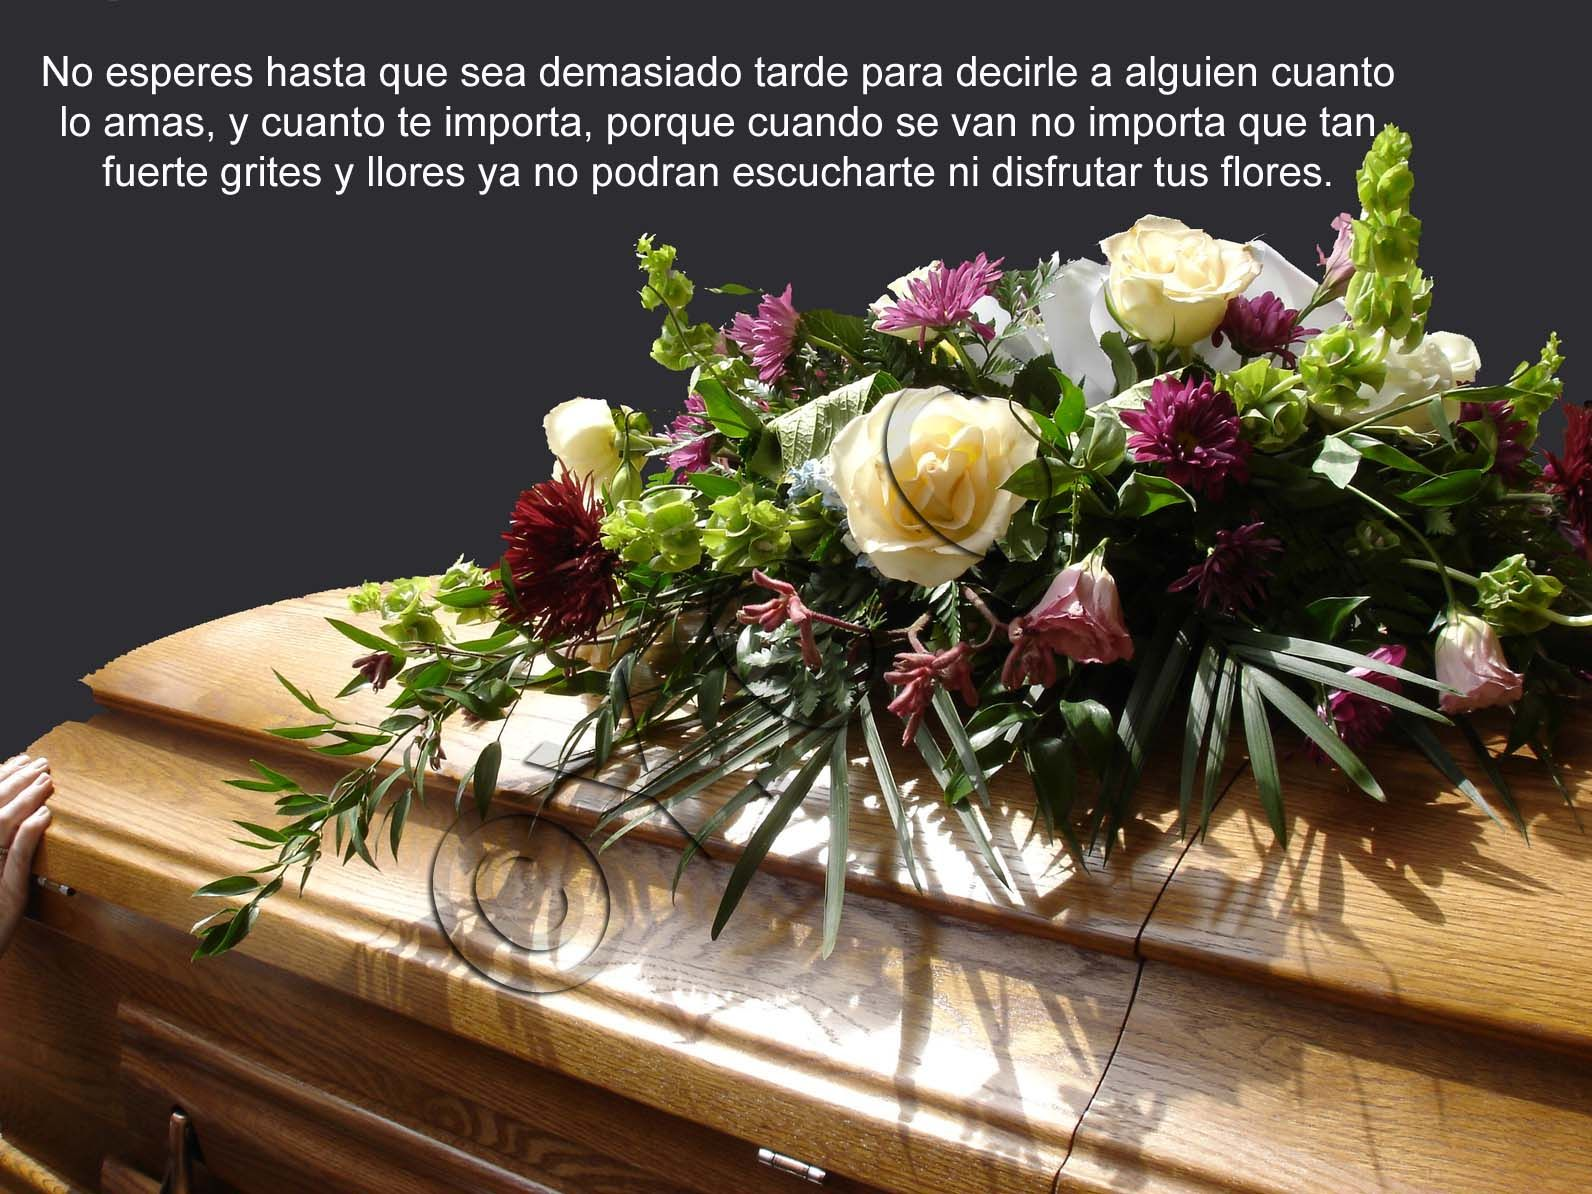 Pin By Luca Chacn On Frases Y Otrxs Pinterest Funeral Funeral